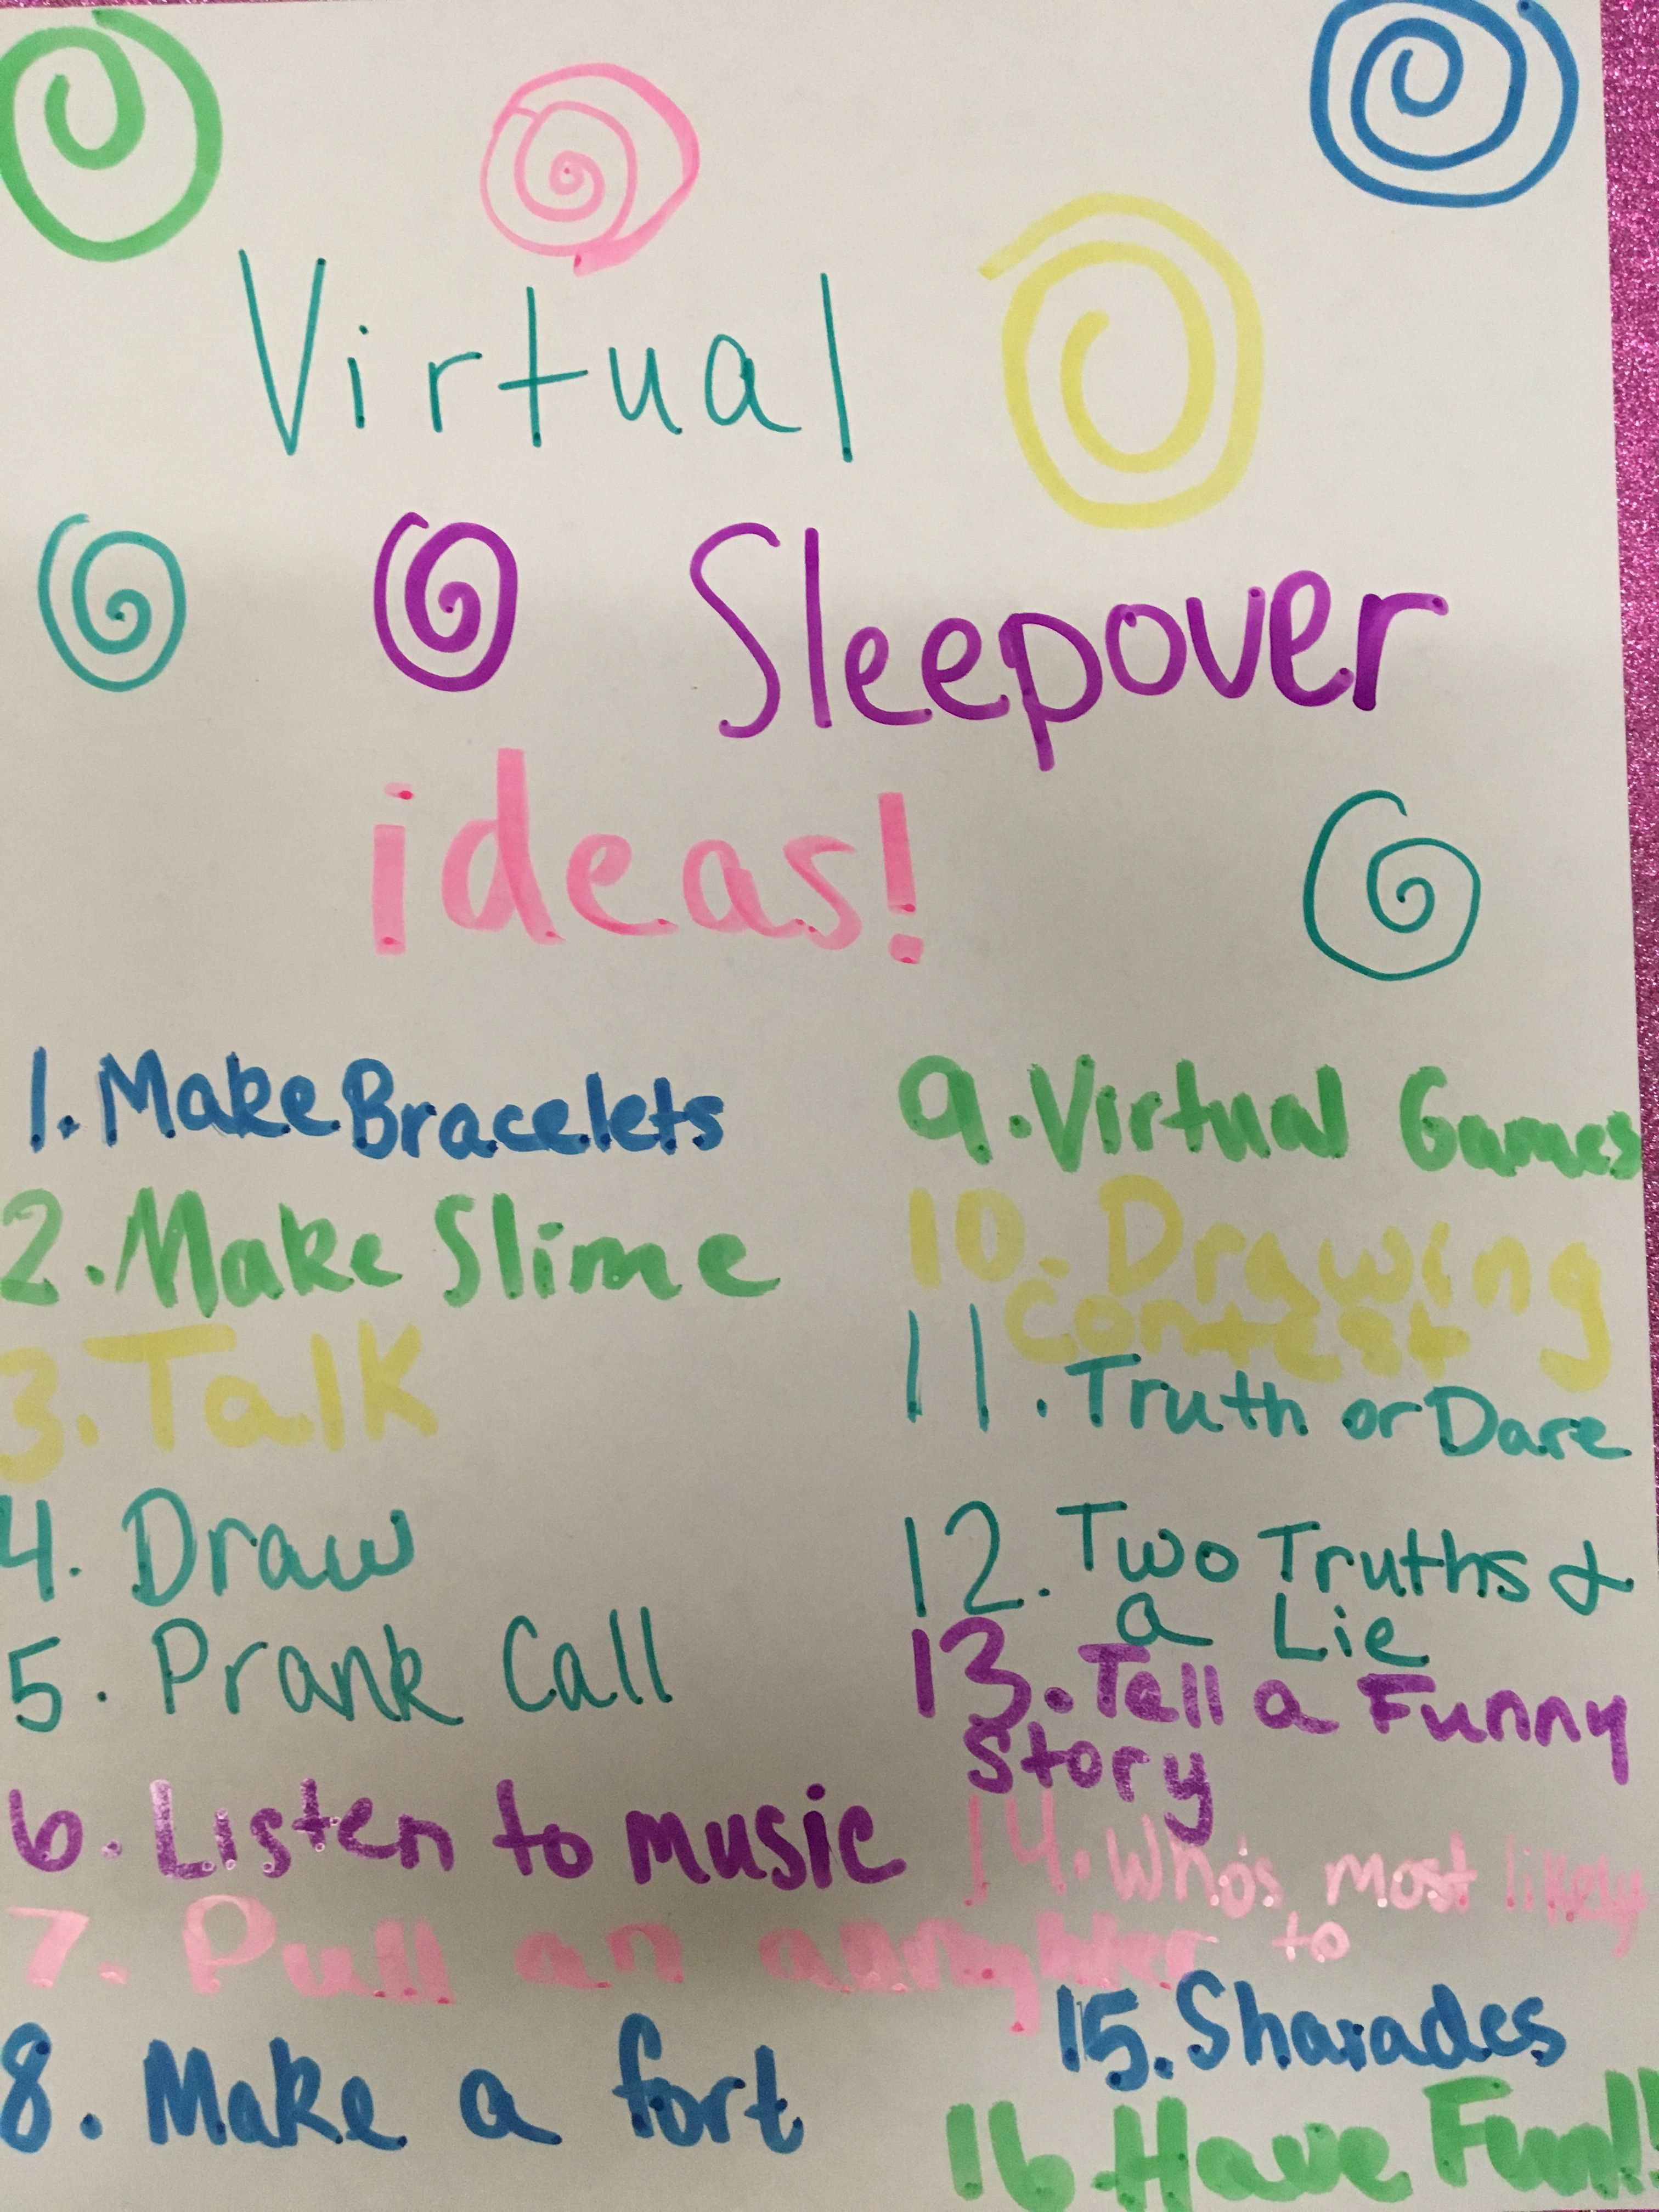 It says virtual but it works for a normal sleepover too